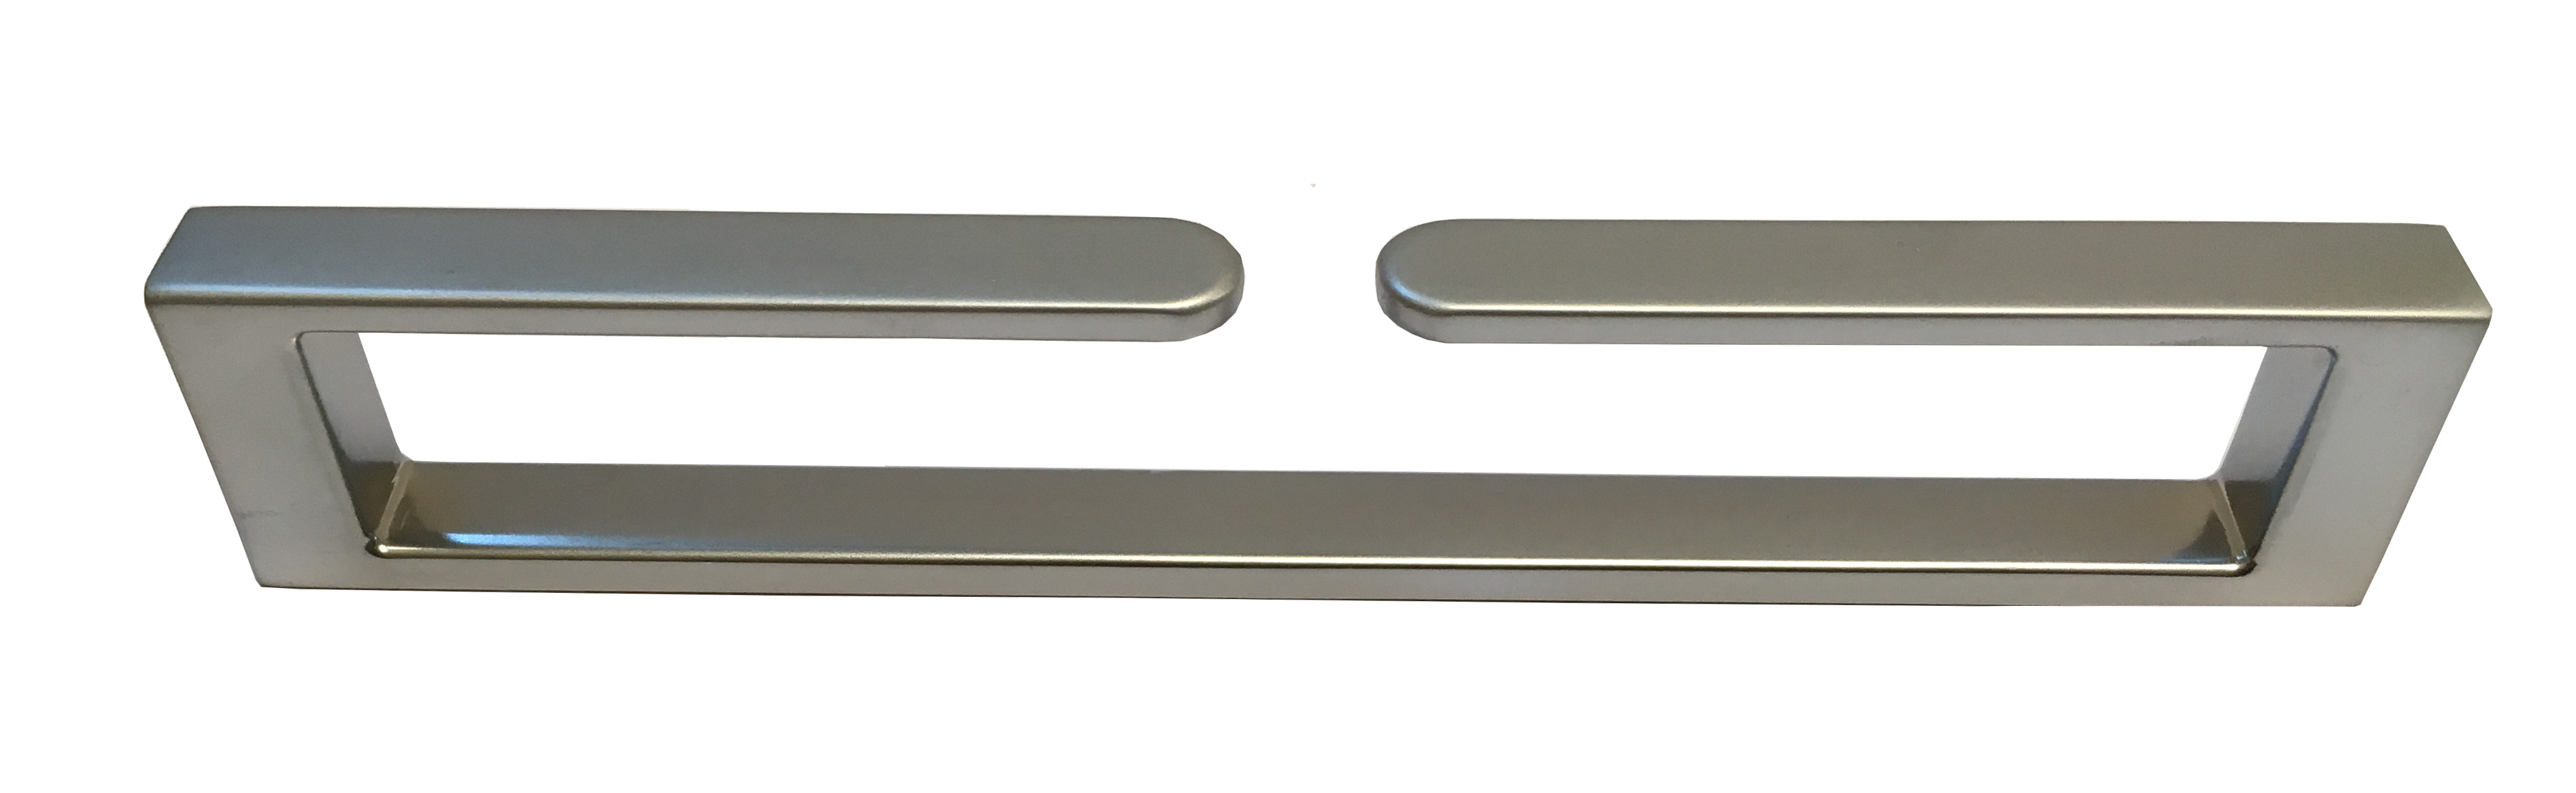 Aluminium Senior Handle UZ-SENIOR-160-05 Side Angle for Kitchen